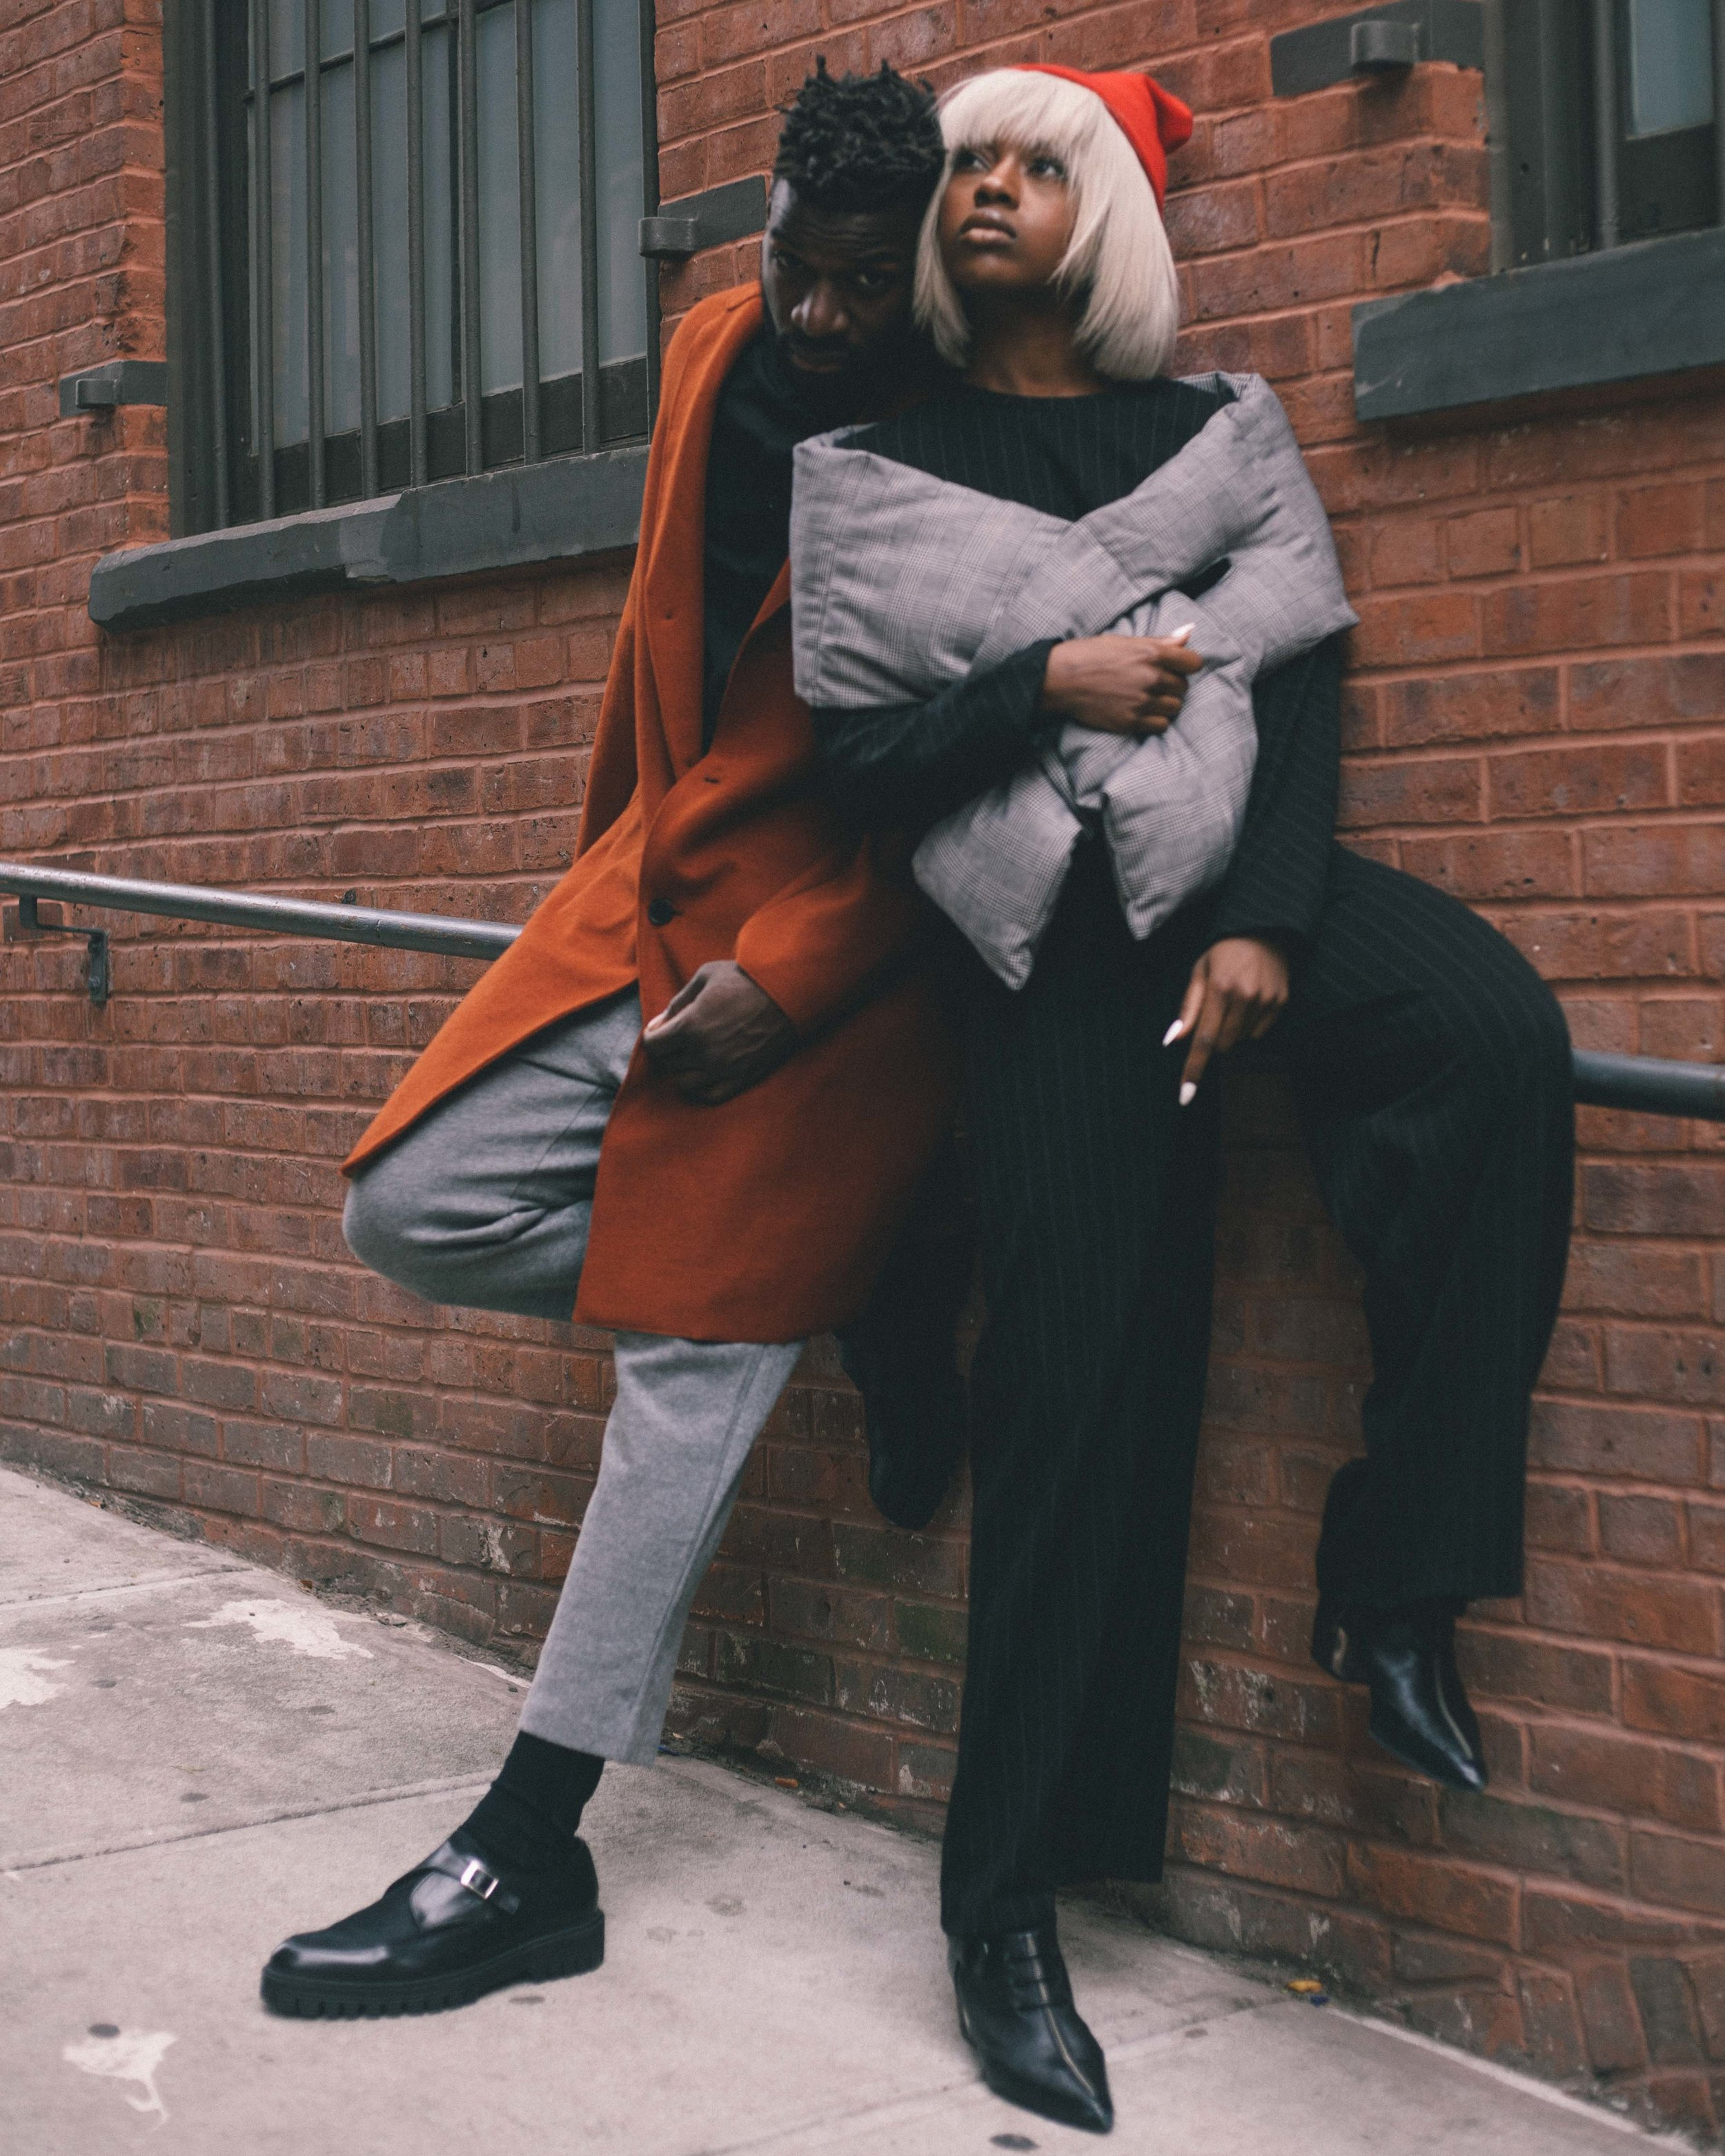 male model in orange jacket. female model in black pin suit. fashion photography captured by jarrod anderson in nyc.